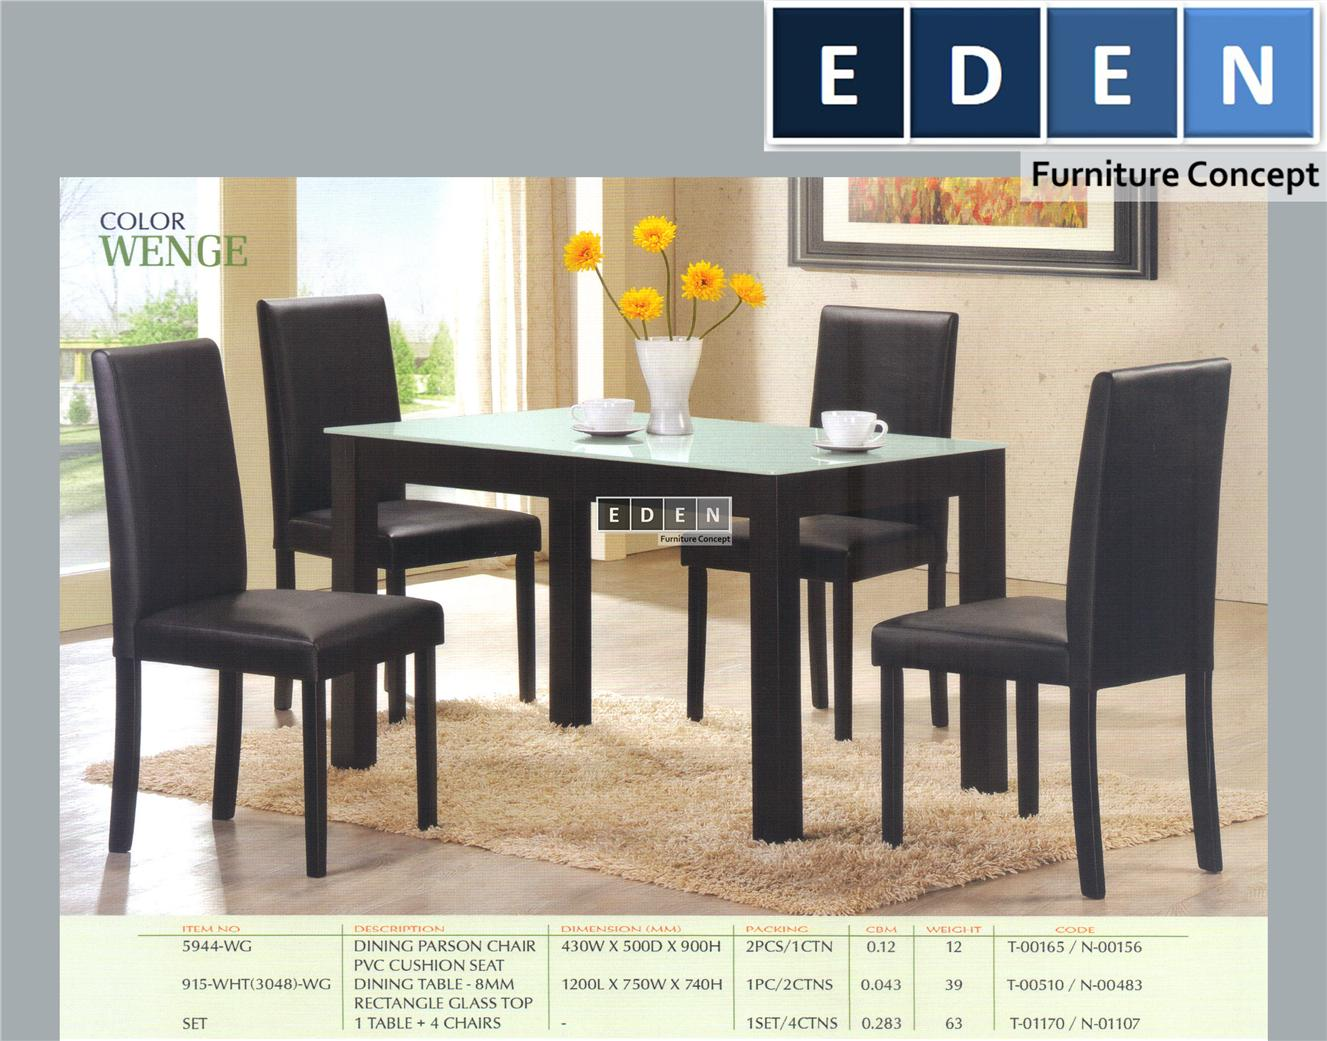 High Dining Table Malaysia Designer Tables Reference : furniture malaysia kitchen dining table set meja makan set 915whts kykstore 1506 12 KYKstore1 from table.celetania.com size 1327 x 1041 jpeg 172kB